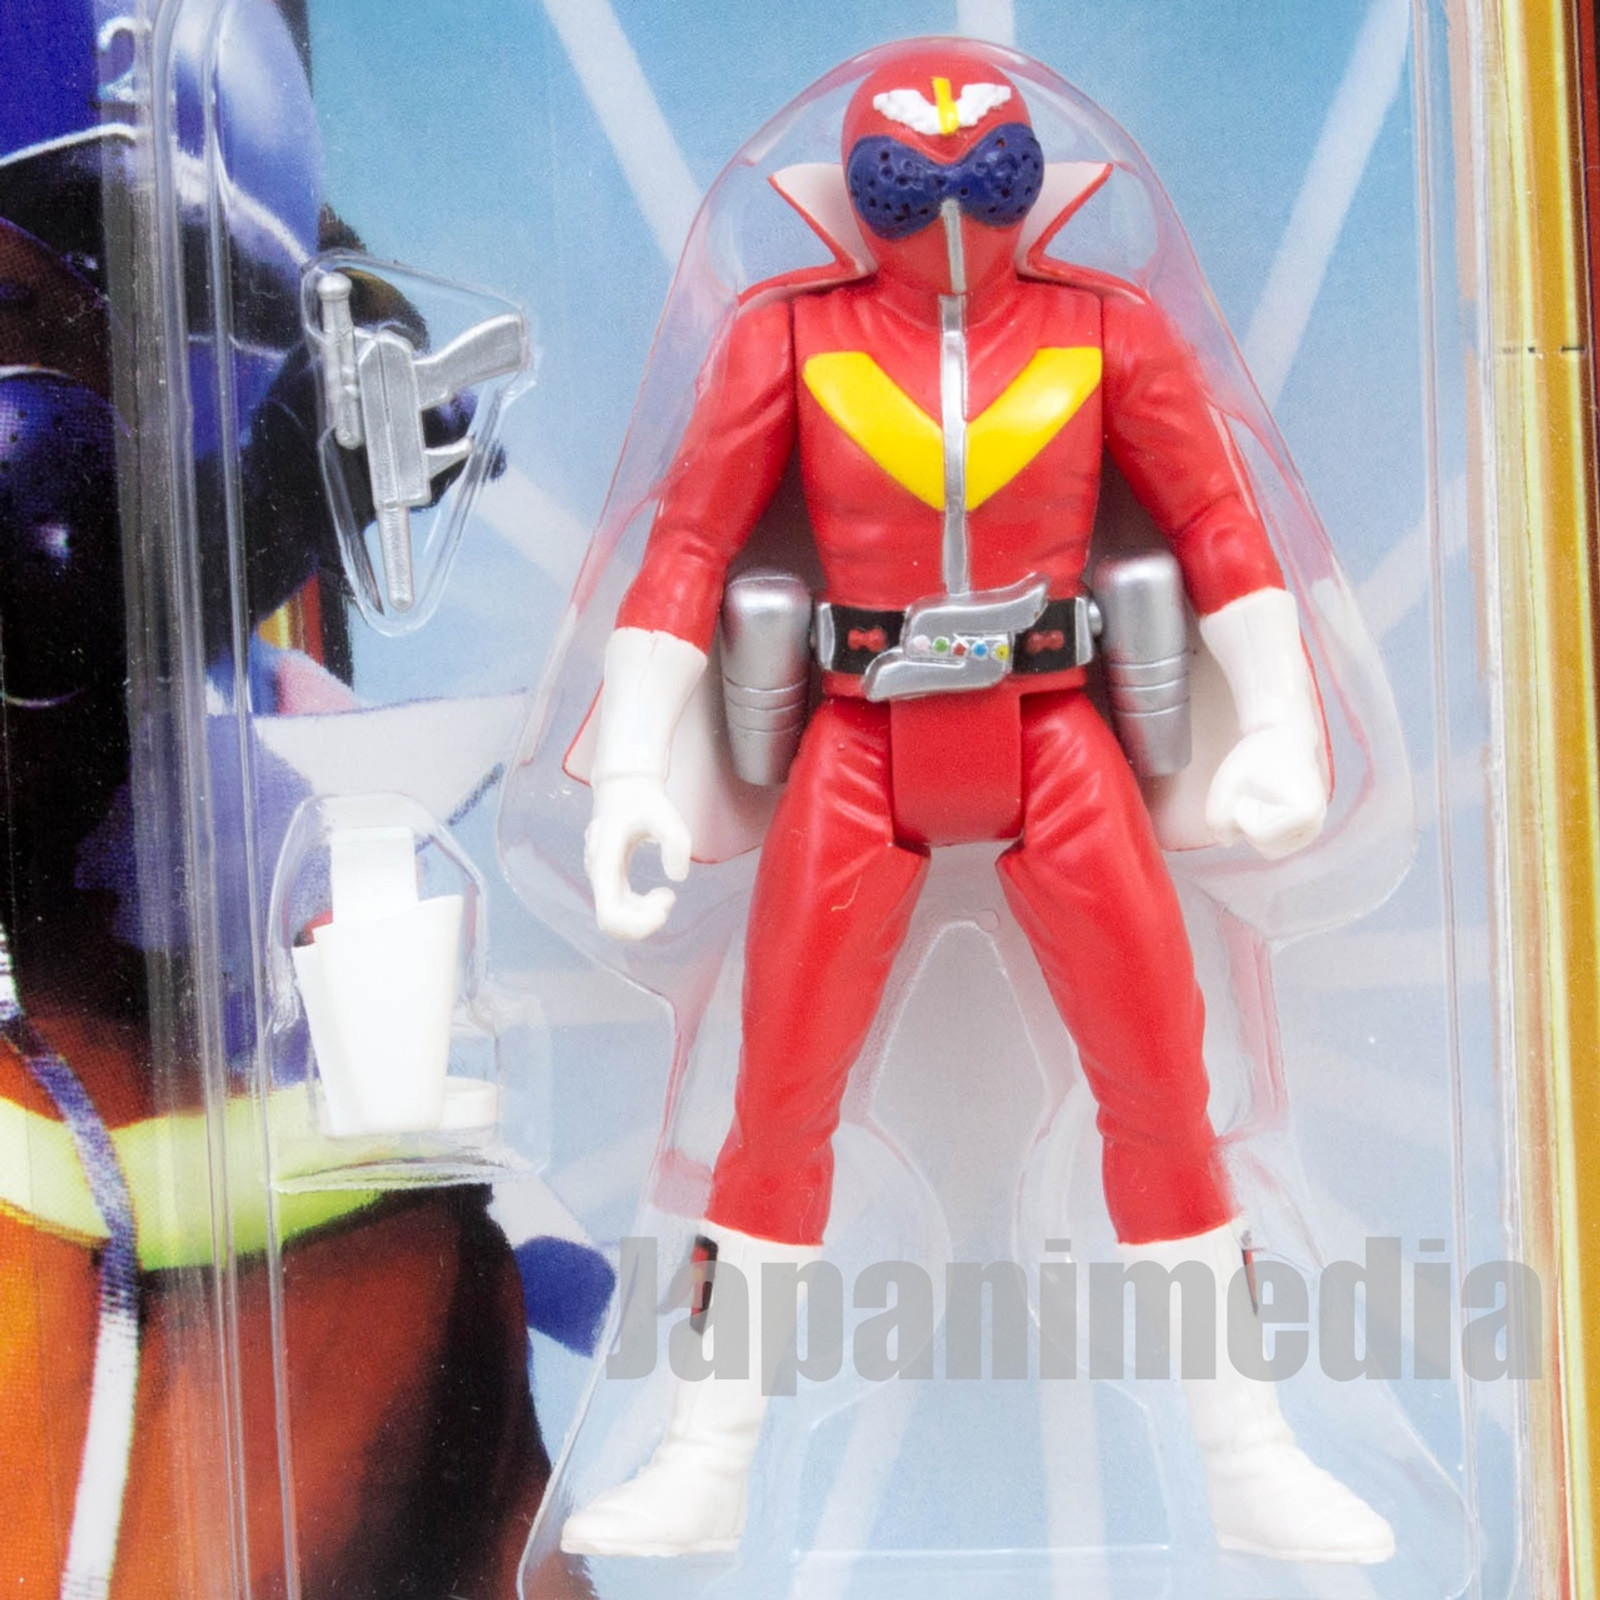 Goranger Red Akaranger Action Figure Collection JAPAN ANIME MANGA TOKUSATSU